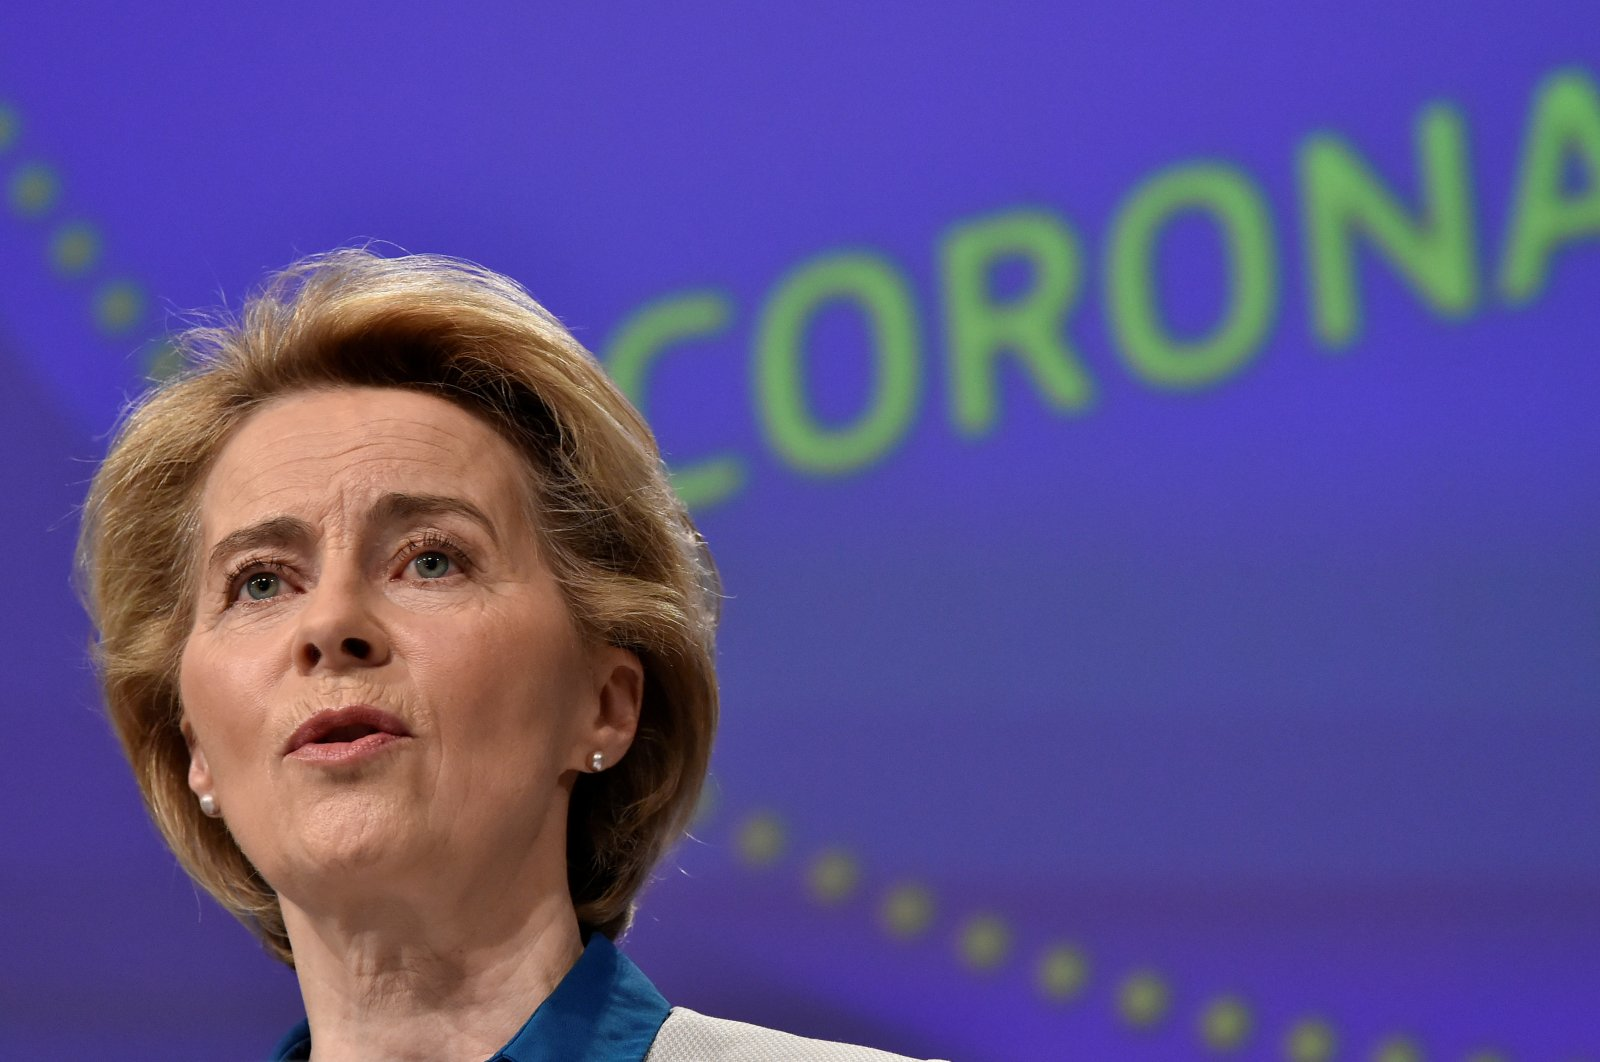 The president of European Commission, Ursula von der Leyen, holds a news conference on the European Union response to the COVID-19 crisis at the EU headquarters in Brussels, April 15, 2020. (REUTERS Photo)